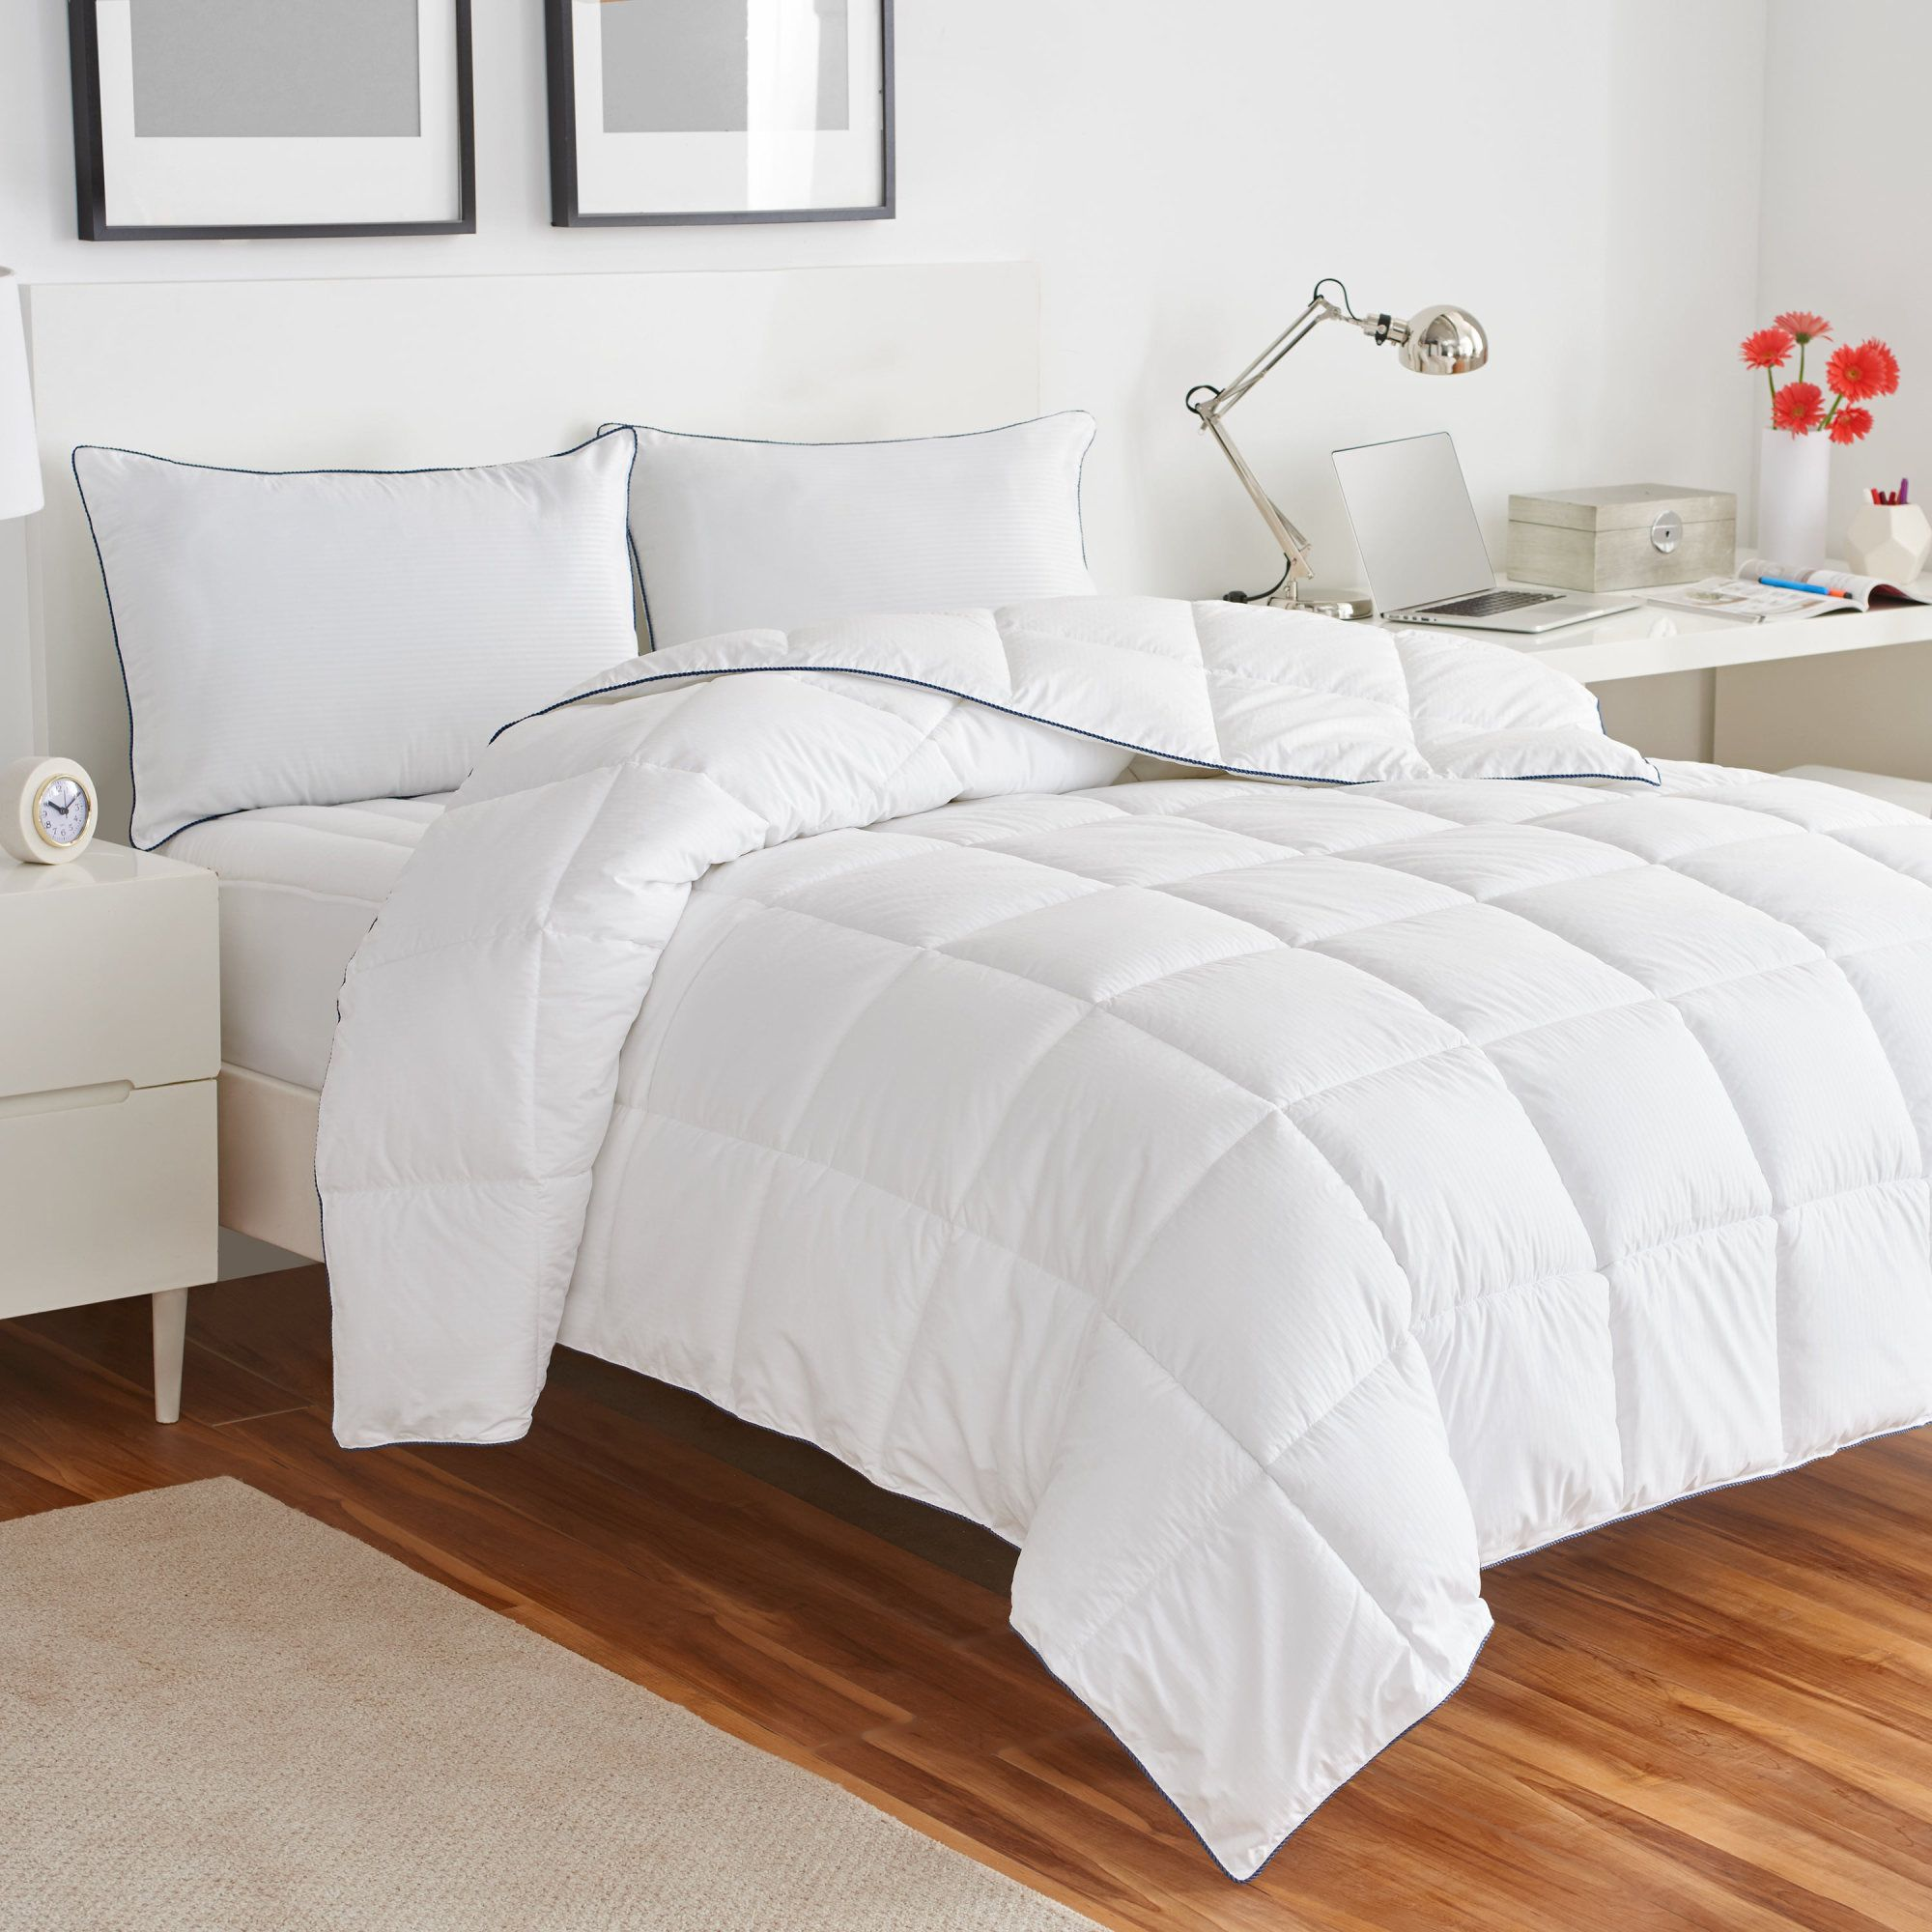 patchwork king size duck twin bedroom multiple duvet sets bedspread piece egg colors bedding full taupe com red bedspreads quilt in blue spread quilts calking double super xmas comforters ruffling navy of gray target coverlet and comforter duvets set queen marmar cover kohls big california